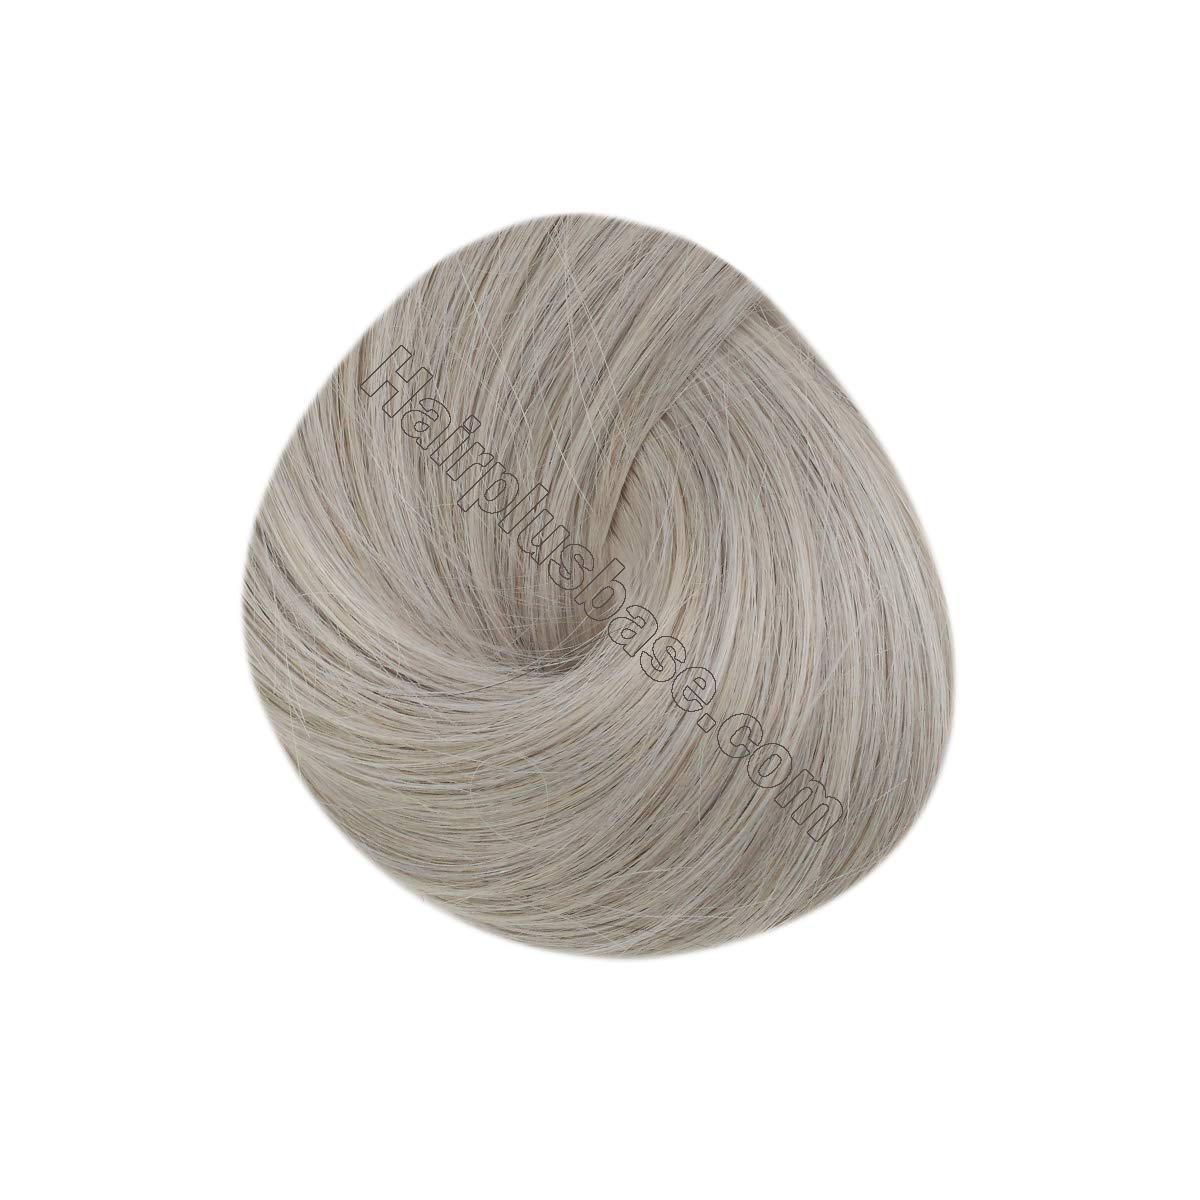 10 - 30 Inch Tape In Remy Human Hair Extensions Grey 20 Pcs 3